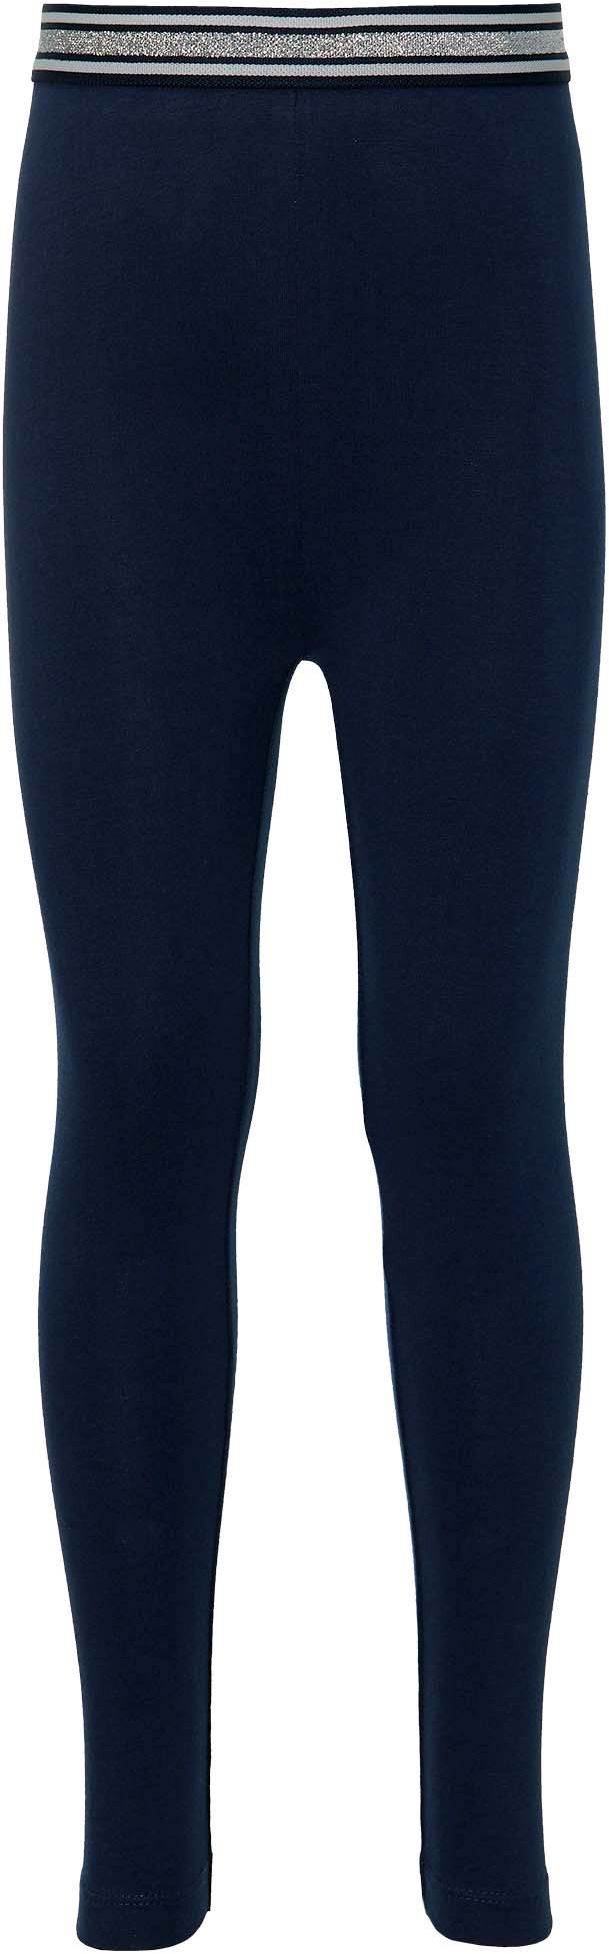 Quapi Girl Leggings dark blue